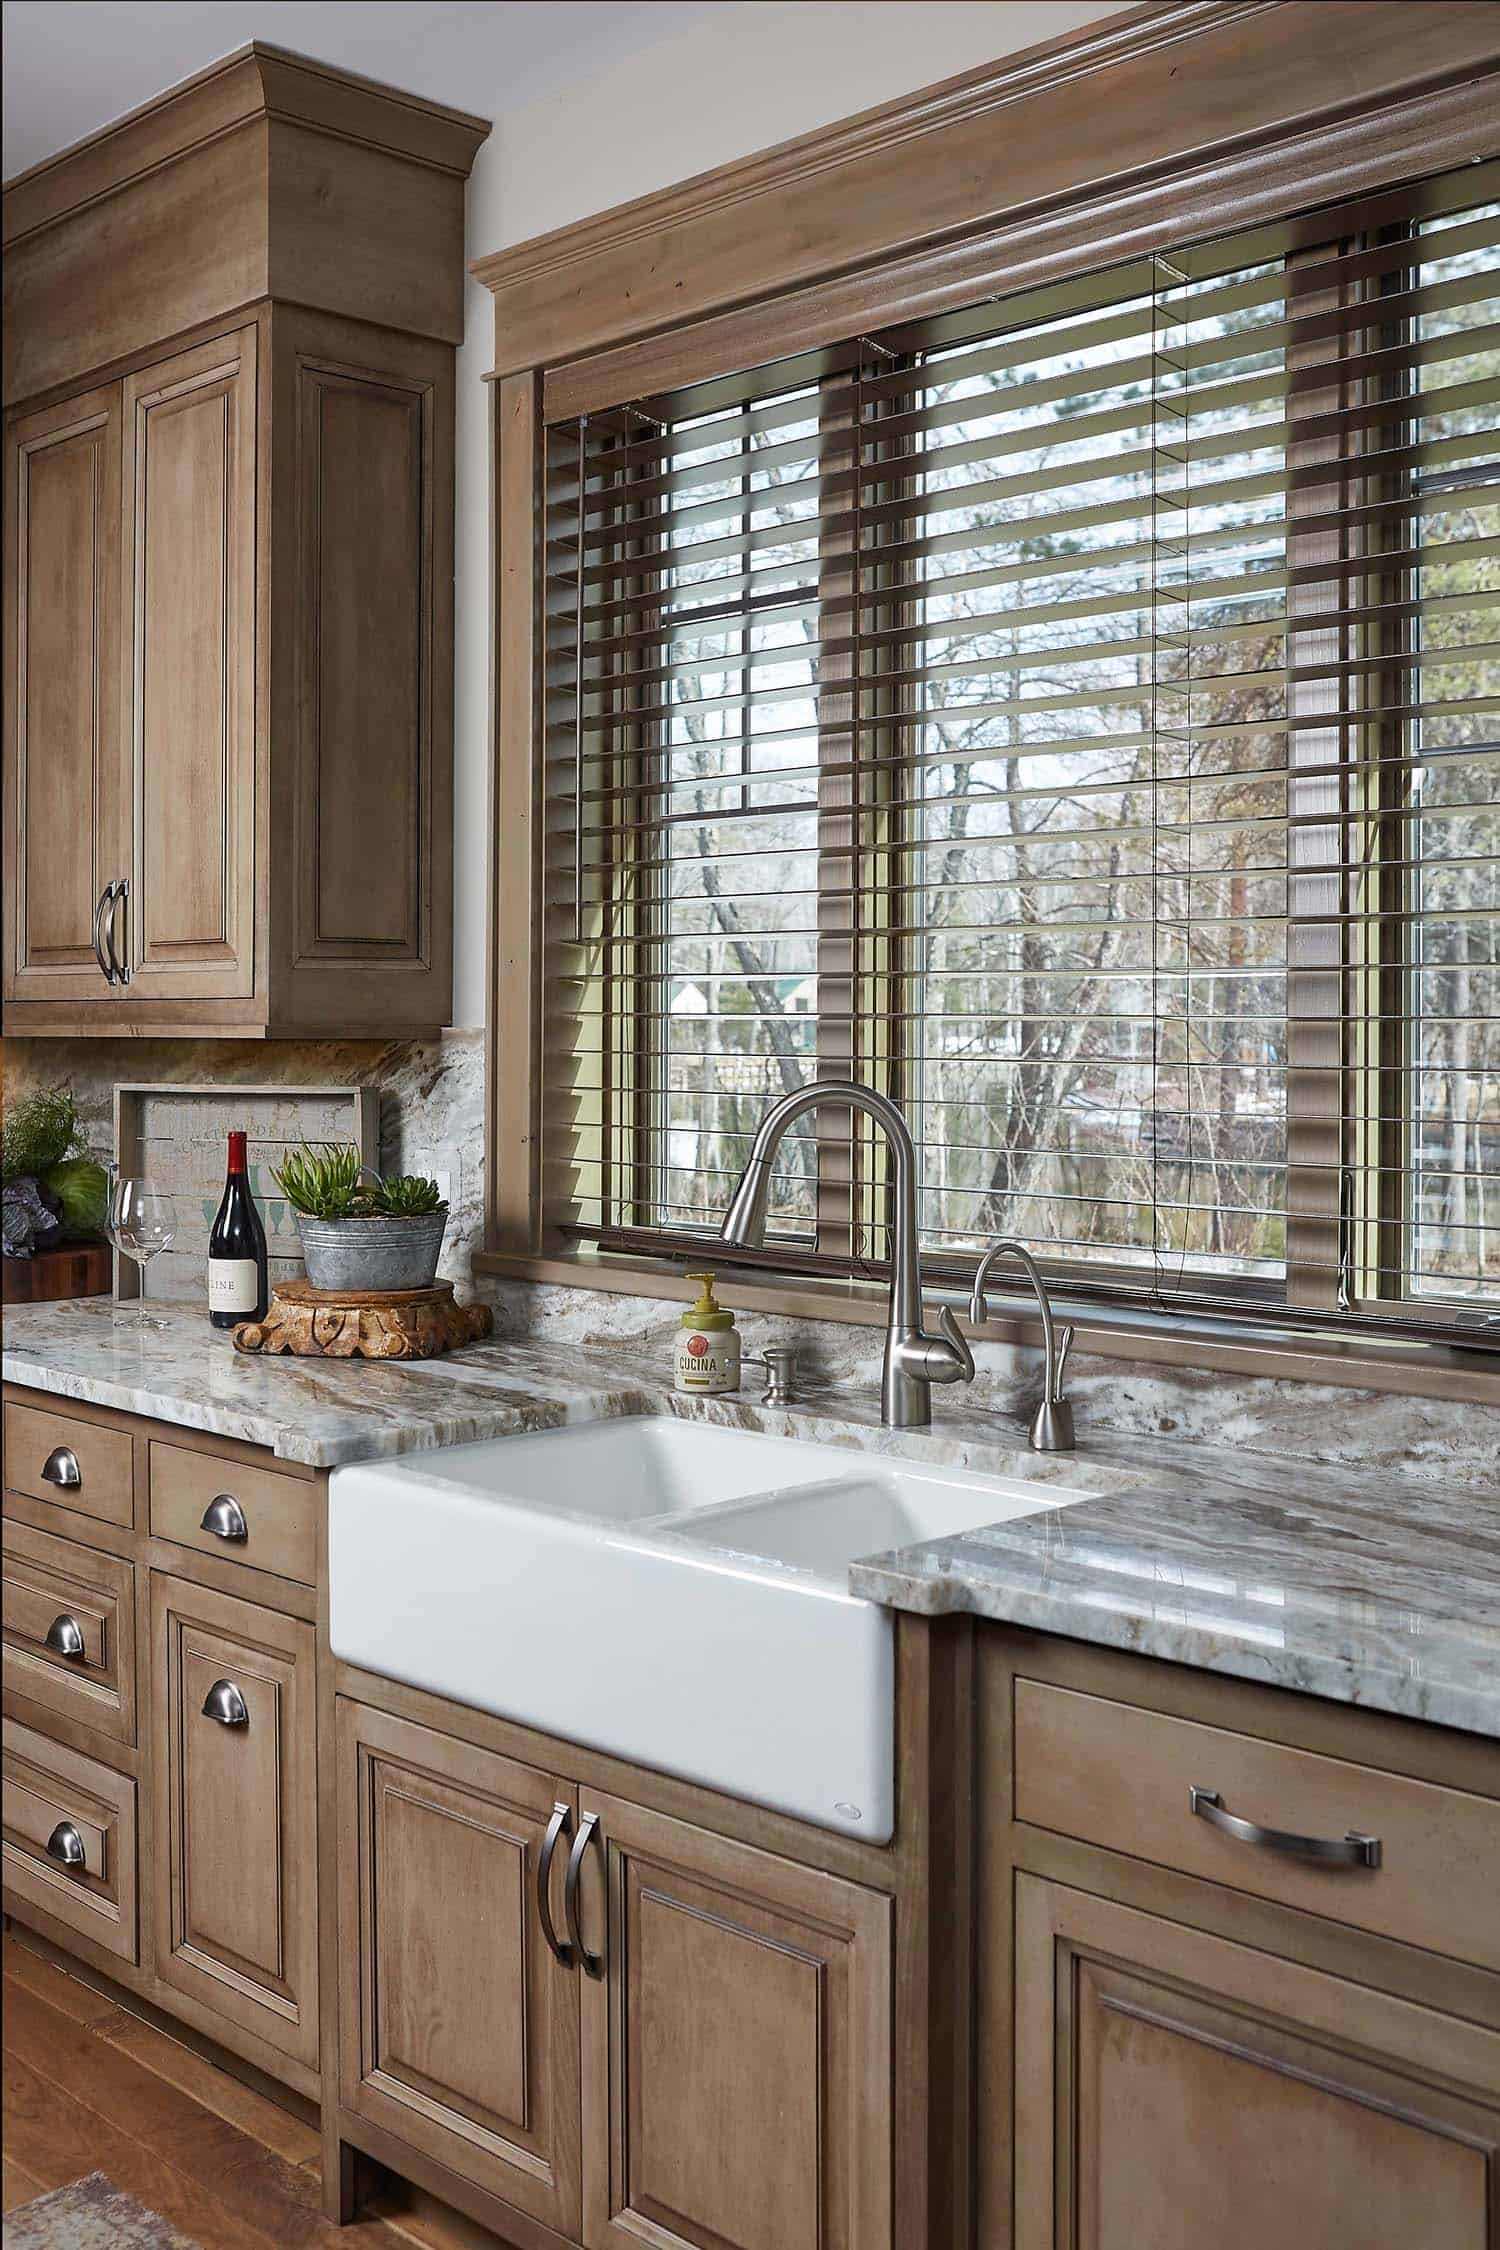 The Cabinets Are From Wolverine Cabinets In Petoskey, Michigan. The  Perimeter Cabinets Are An Alder Wood With An Expresso Stain, While The  Island Was ...